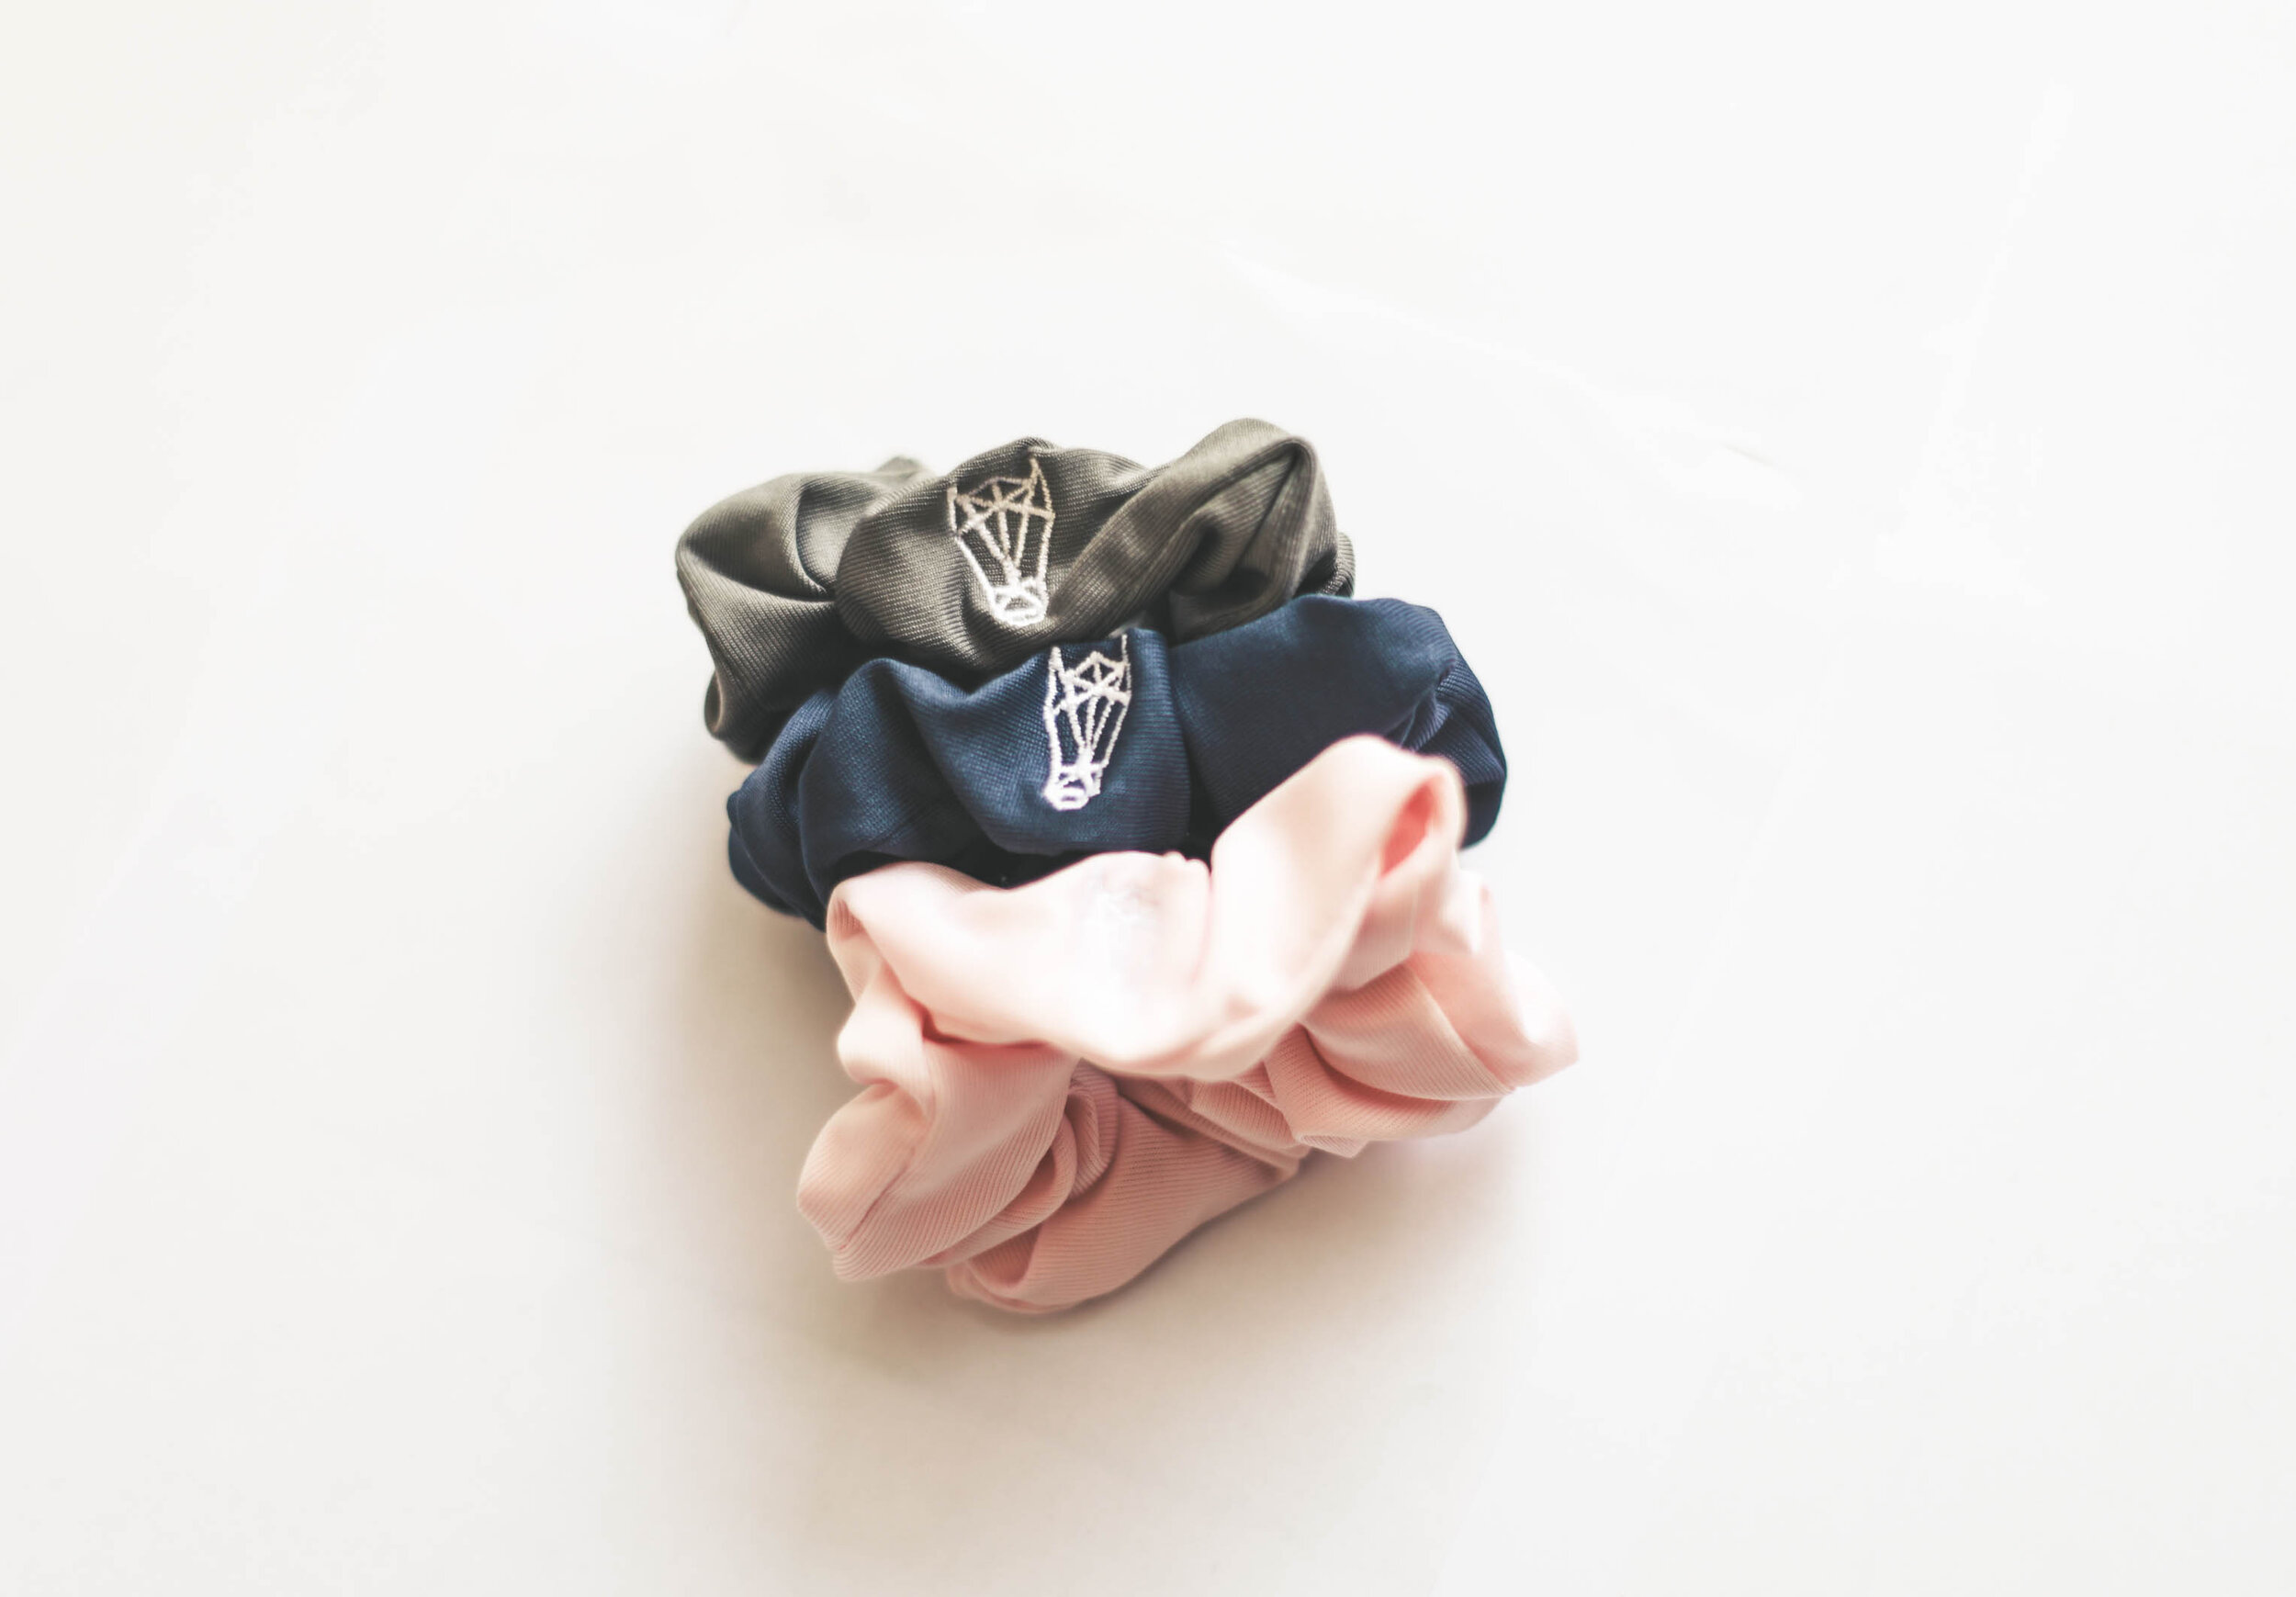 Set of Three scrunchies in Vancouver Grey, Aegean Blue, and Champagne Pink.